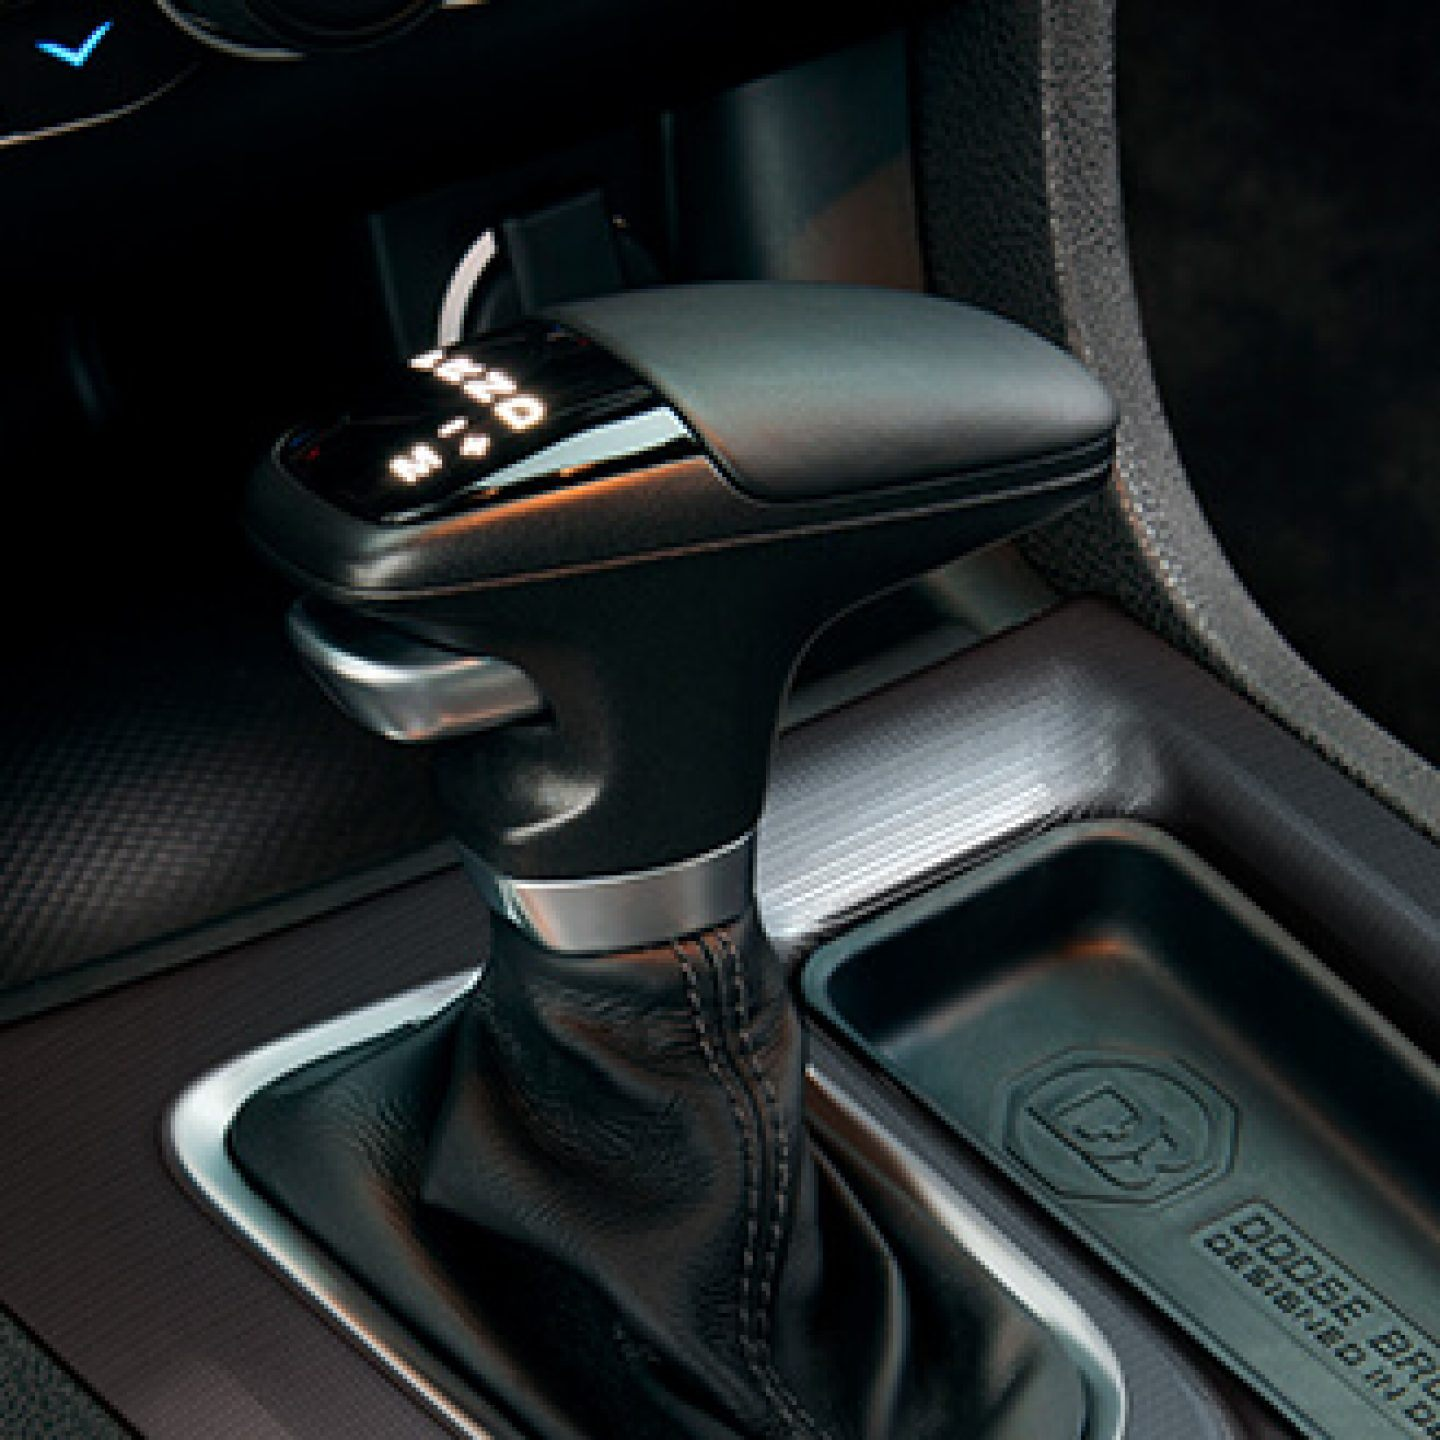 2020-dodge-charger-interior-performance-shifter.jpg.image.1440